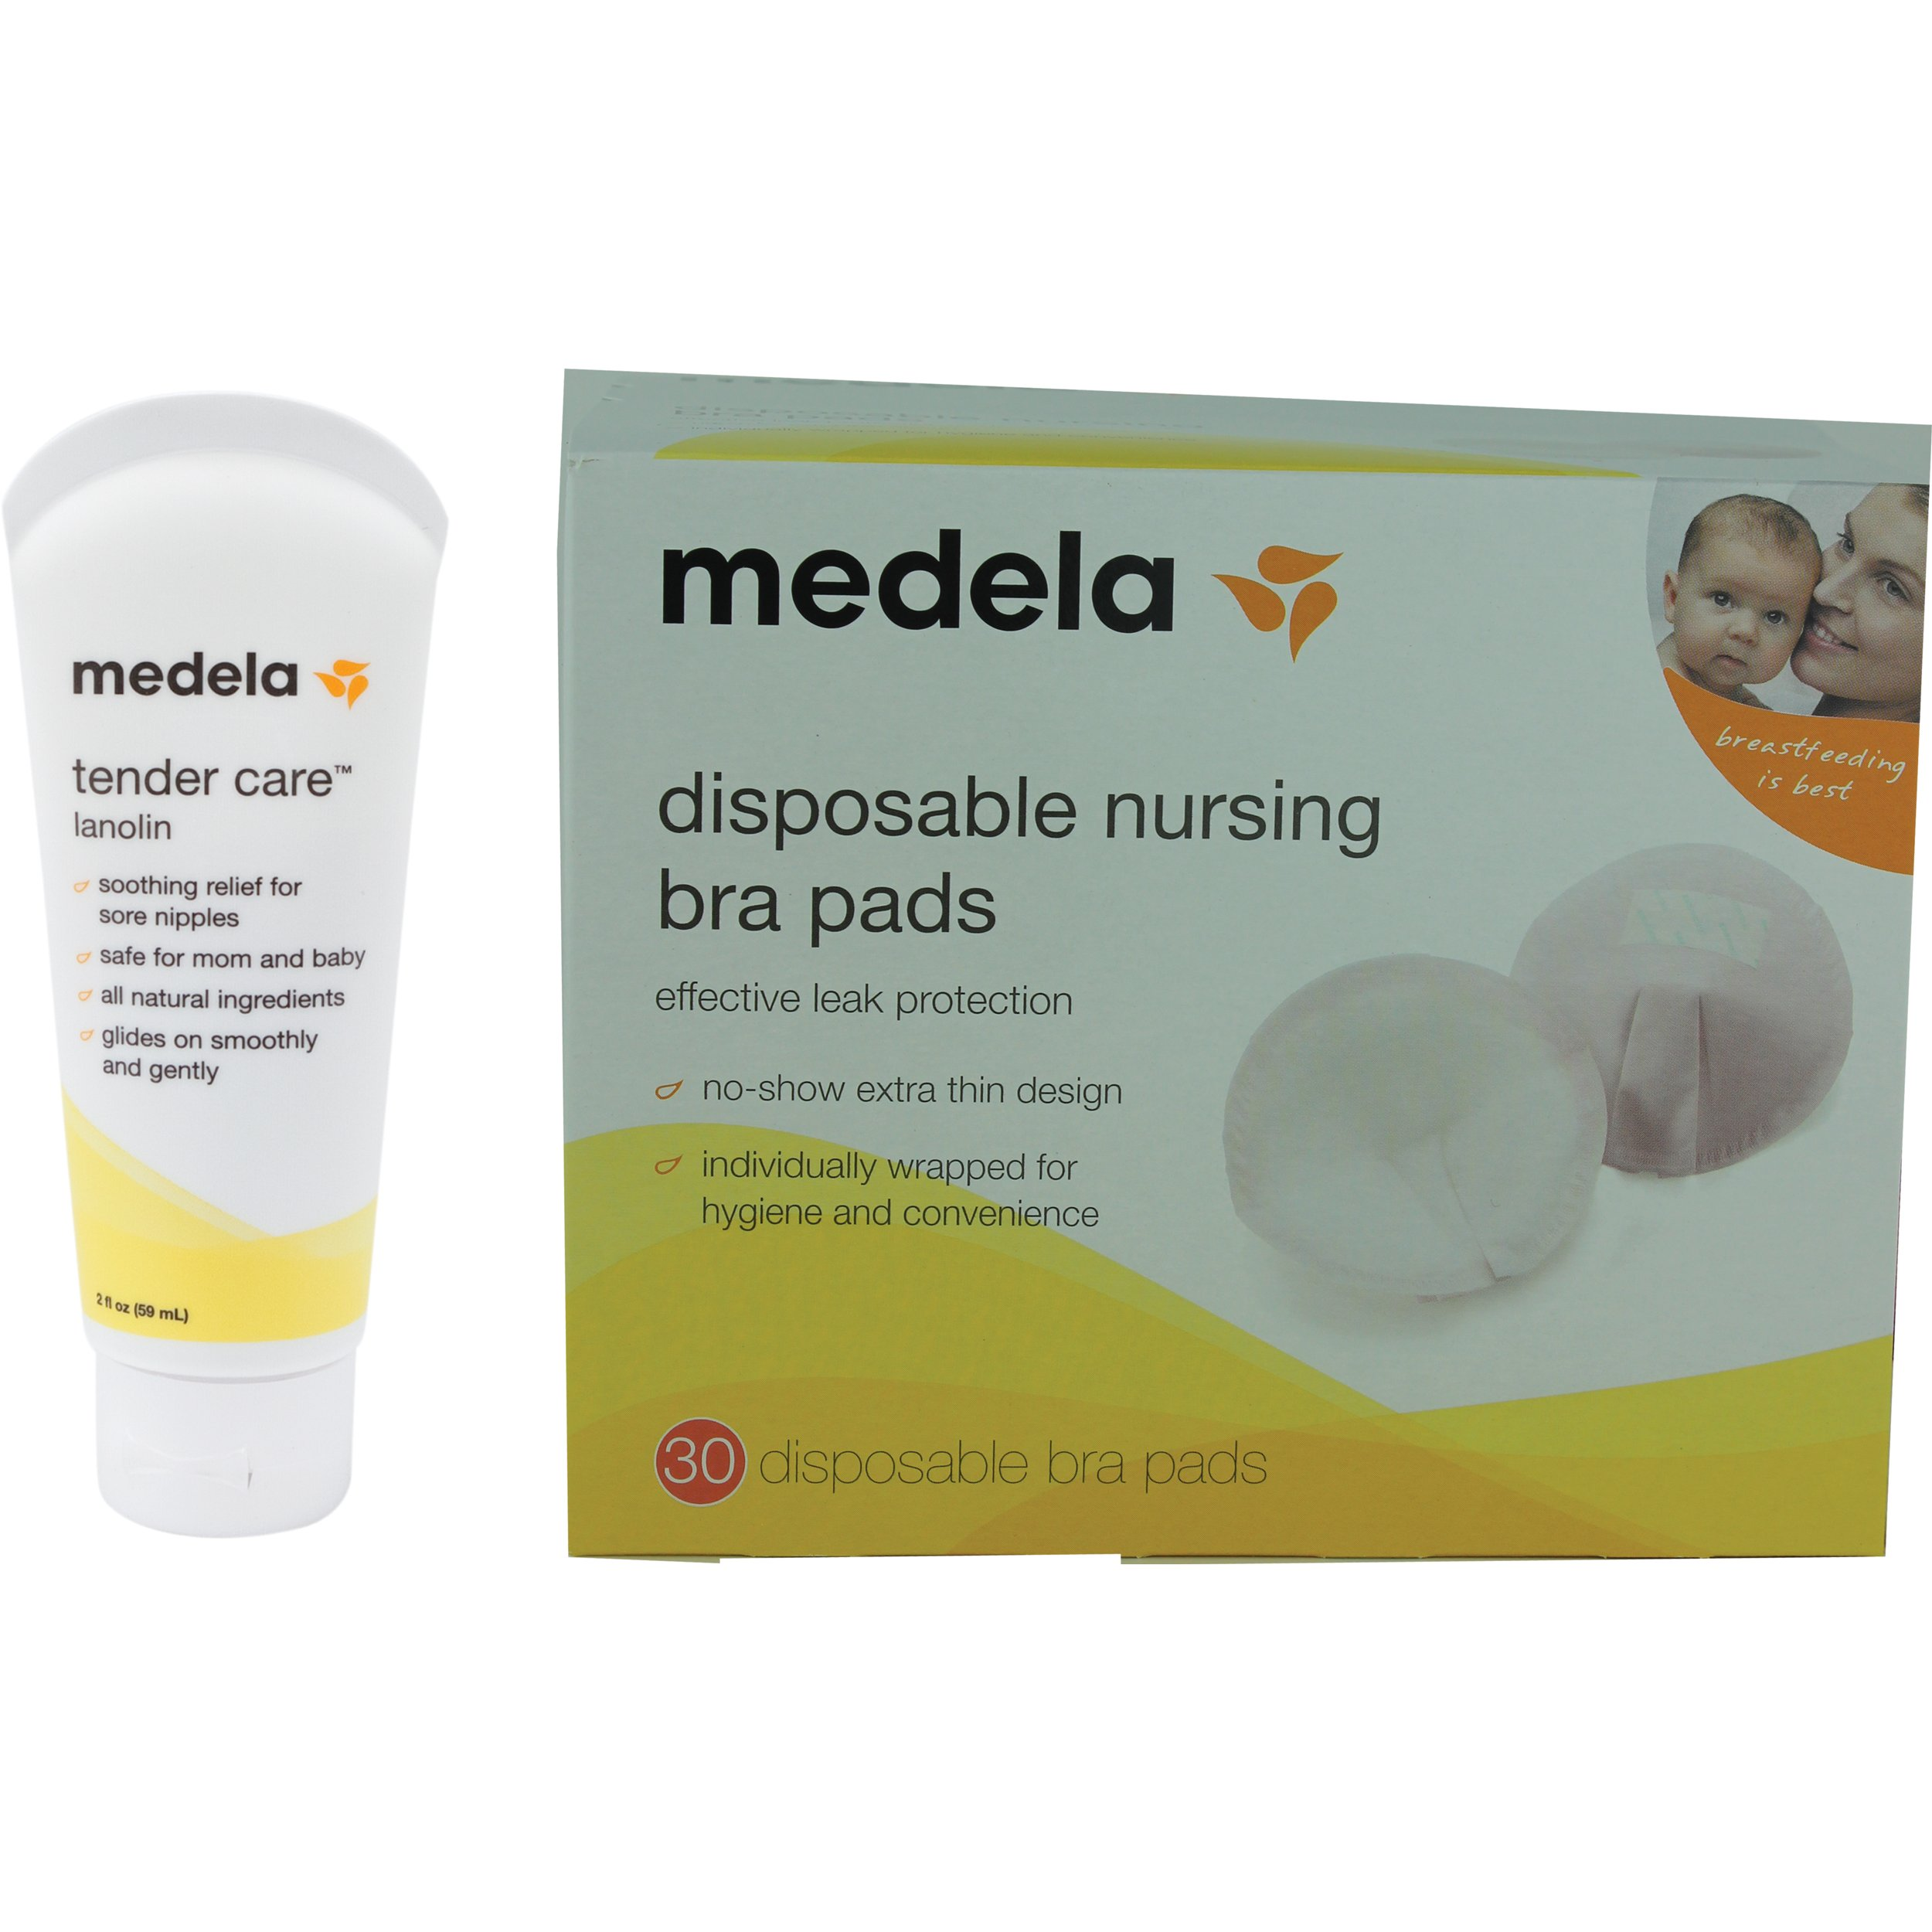 Medela Tender Care Lanolin, (2 oz) WITH Disposable Nursing Bra Pads (30 Count) for Nursing Moms